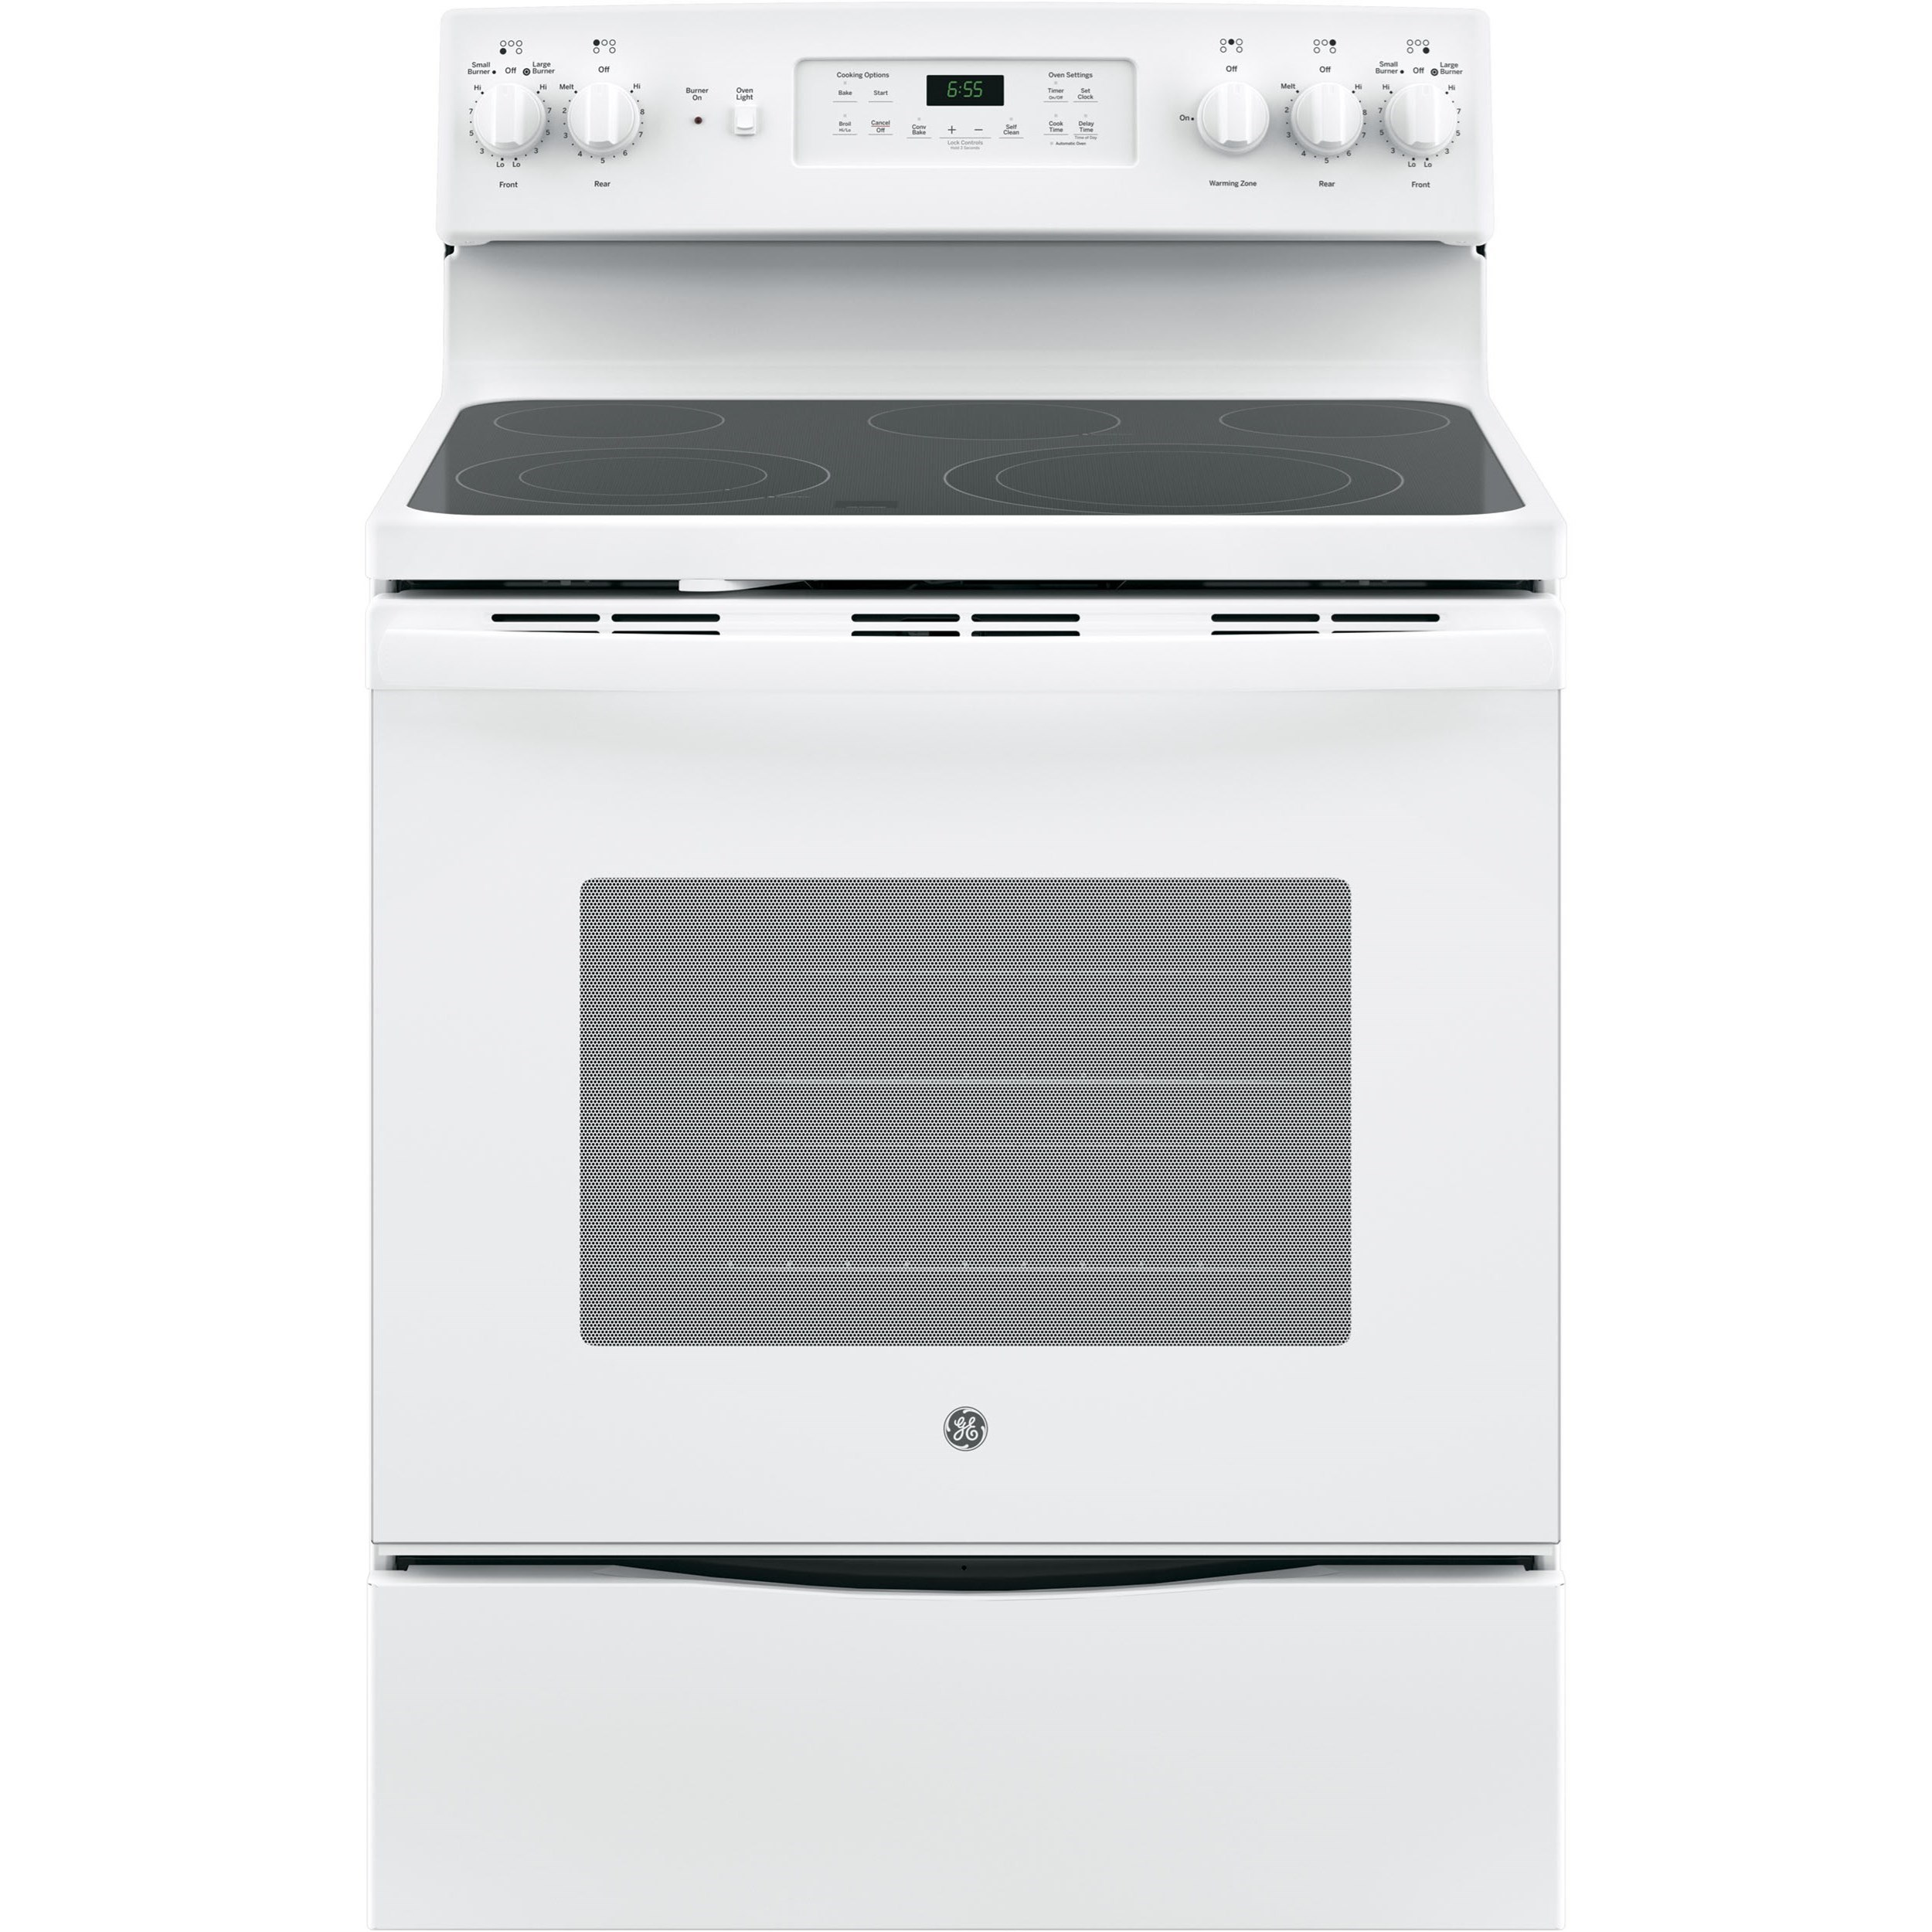 "GE Appliances GE Electric Ranges 30"" Free-Standing Convection Electric Range - Item Number: JB655DKWW"